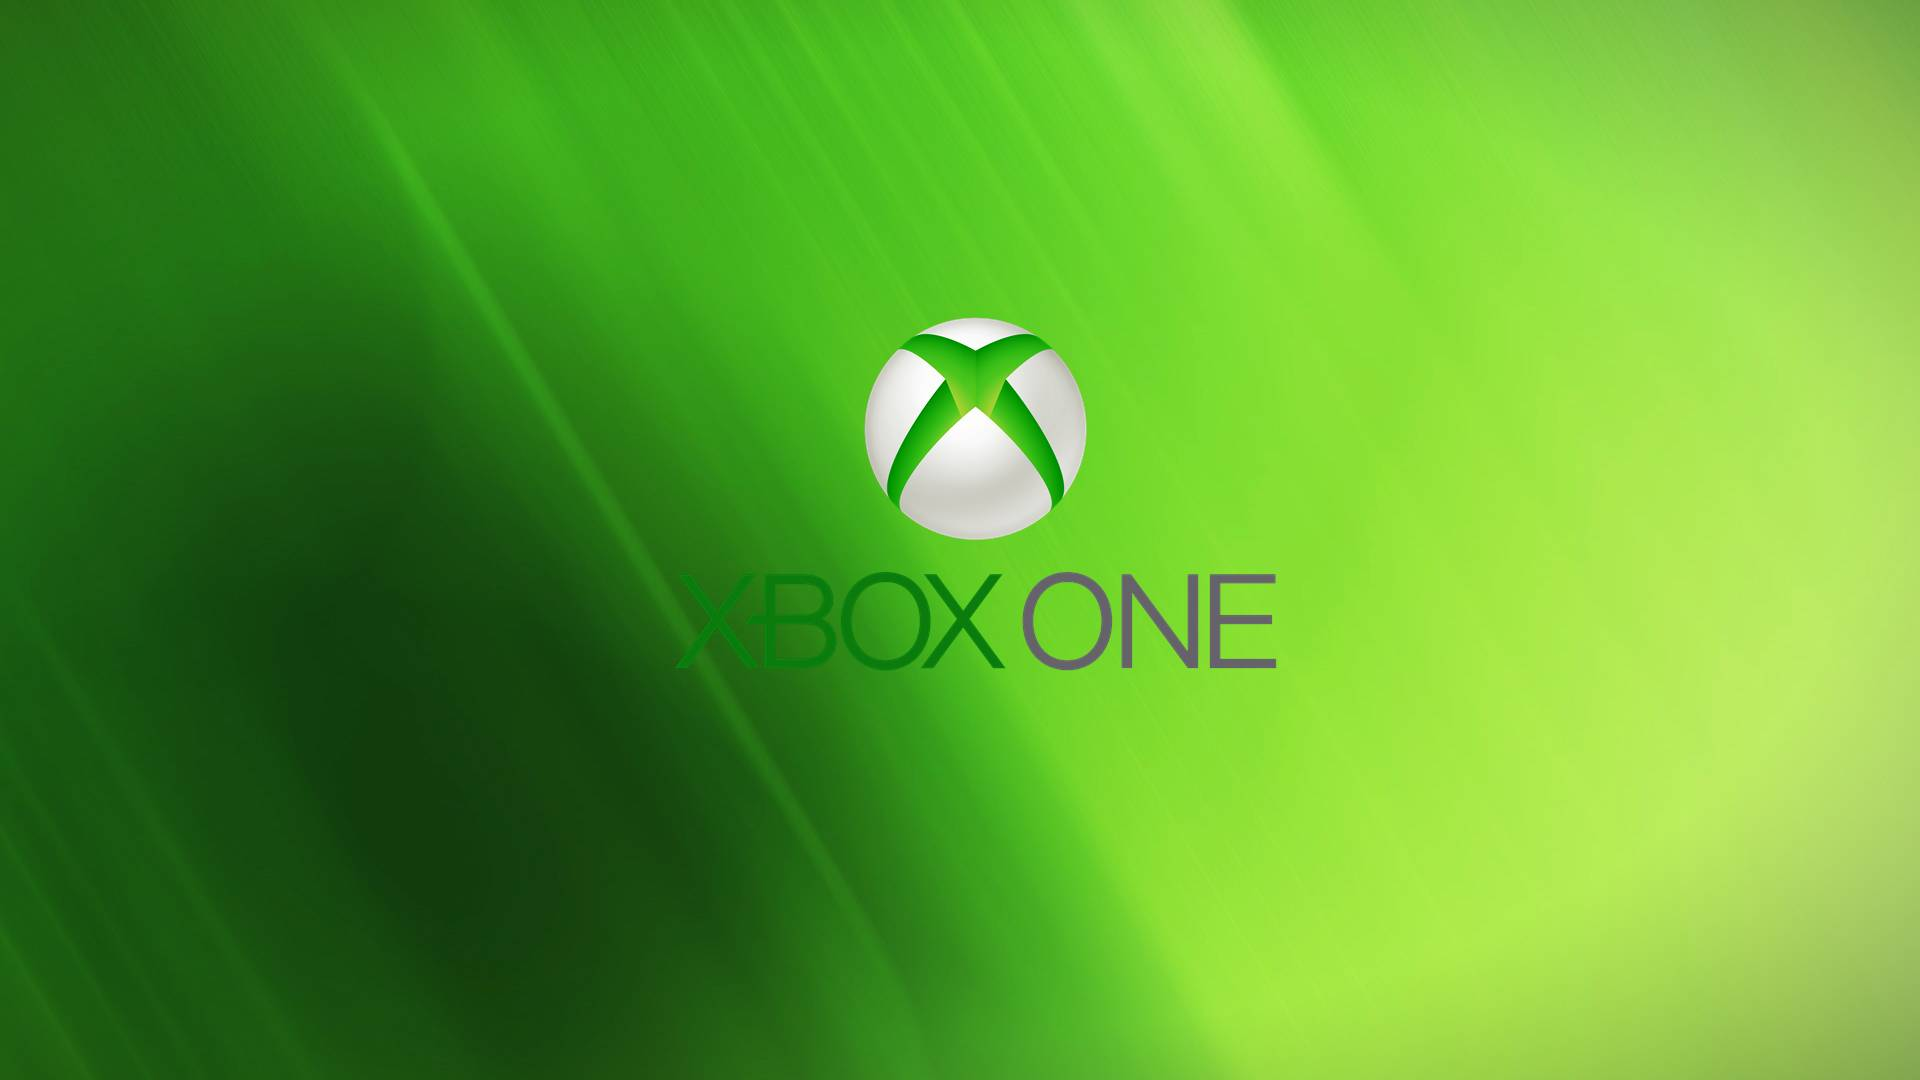 50 Live Wallpapers For Xbox One On Wallpapersafari